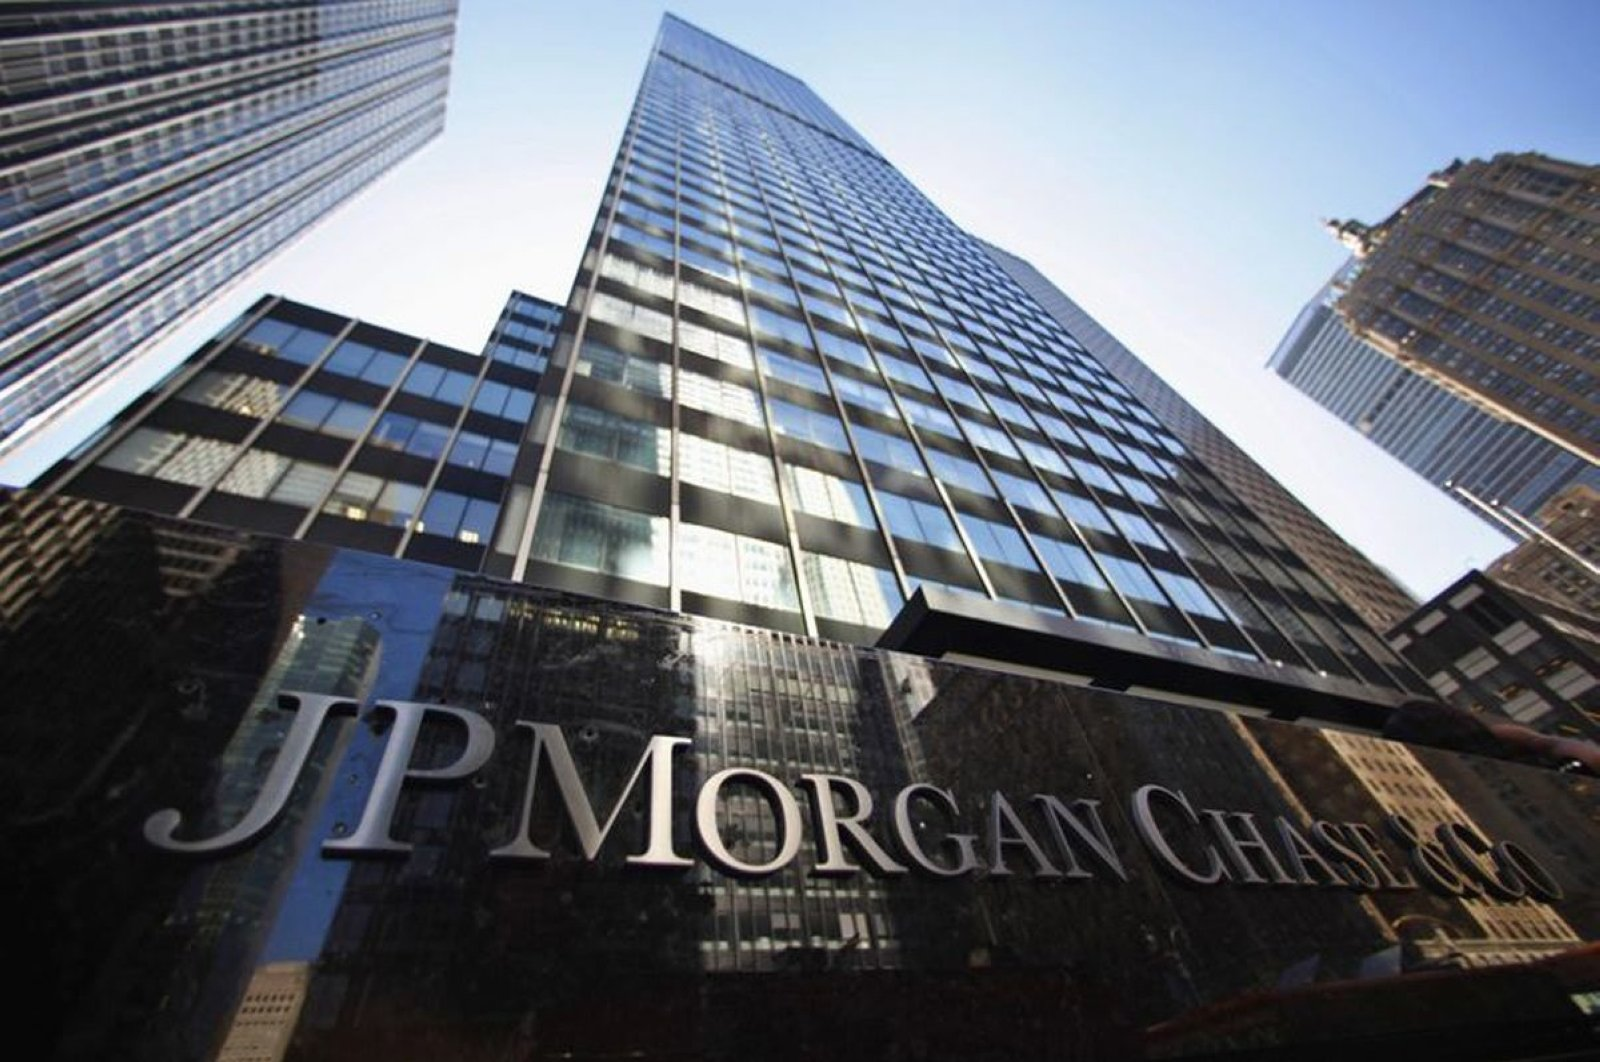 A sign outside the headquarters of JP Morgan Chase & Co in New York, in this September 19, 2013 file photo. For years, the banking giant aided one of the world's biggest Ponzi schemers, Bernie Madoff. (Reuters Photo)